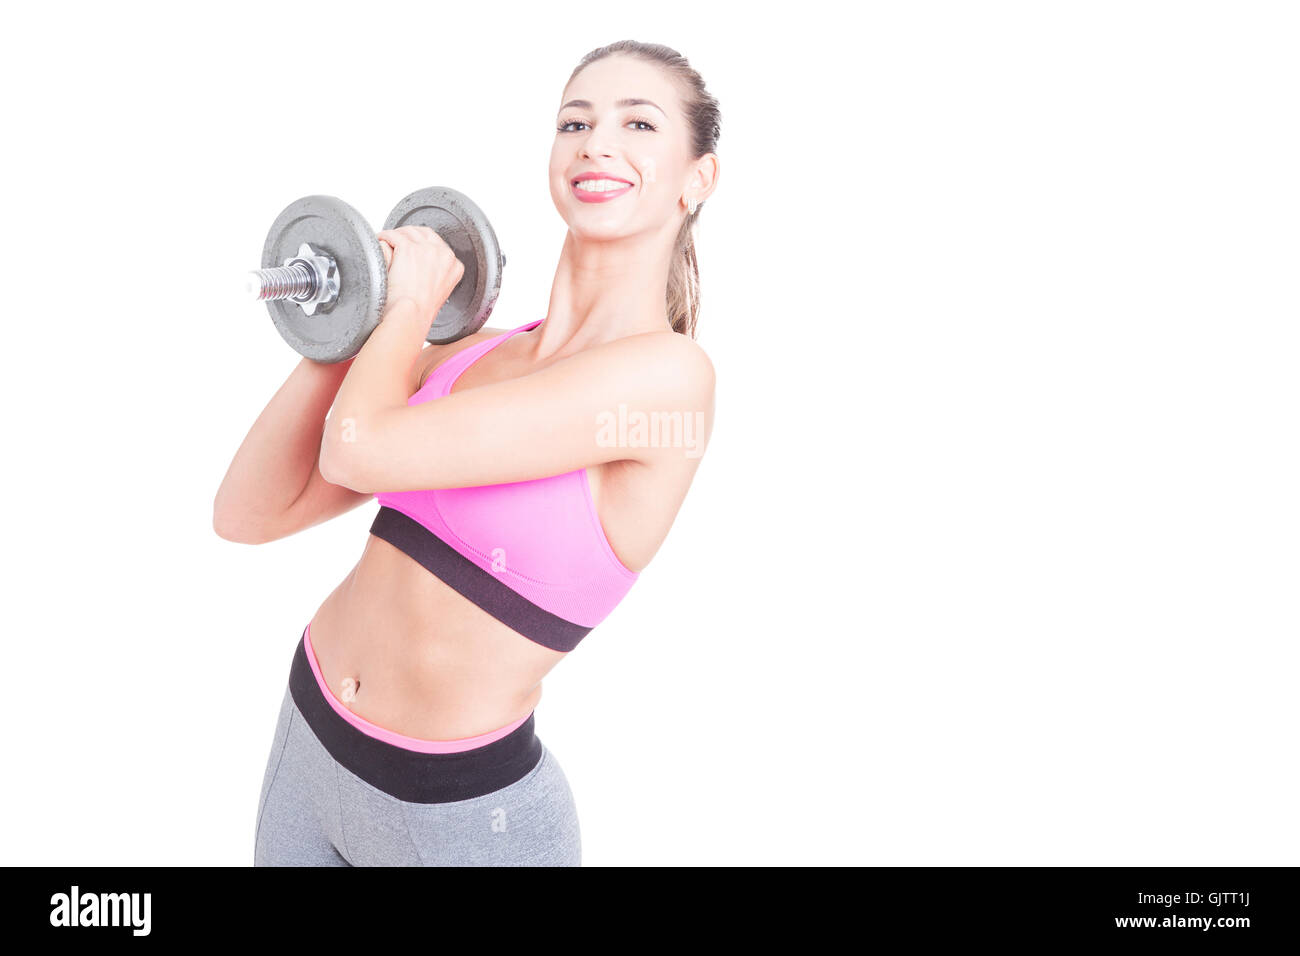 Girl working out holding heavy weight and smiling isolated on white background with copy text space - Stock Image